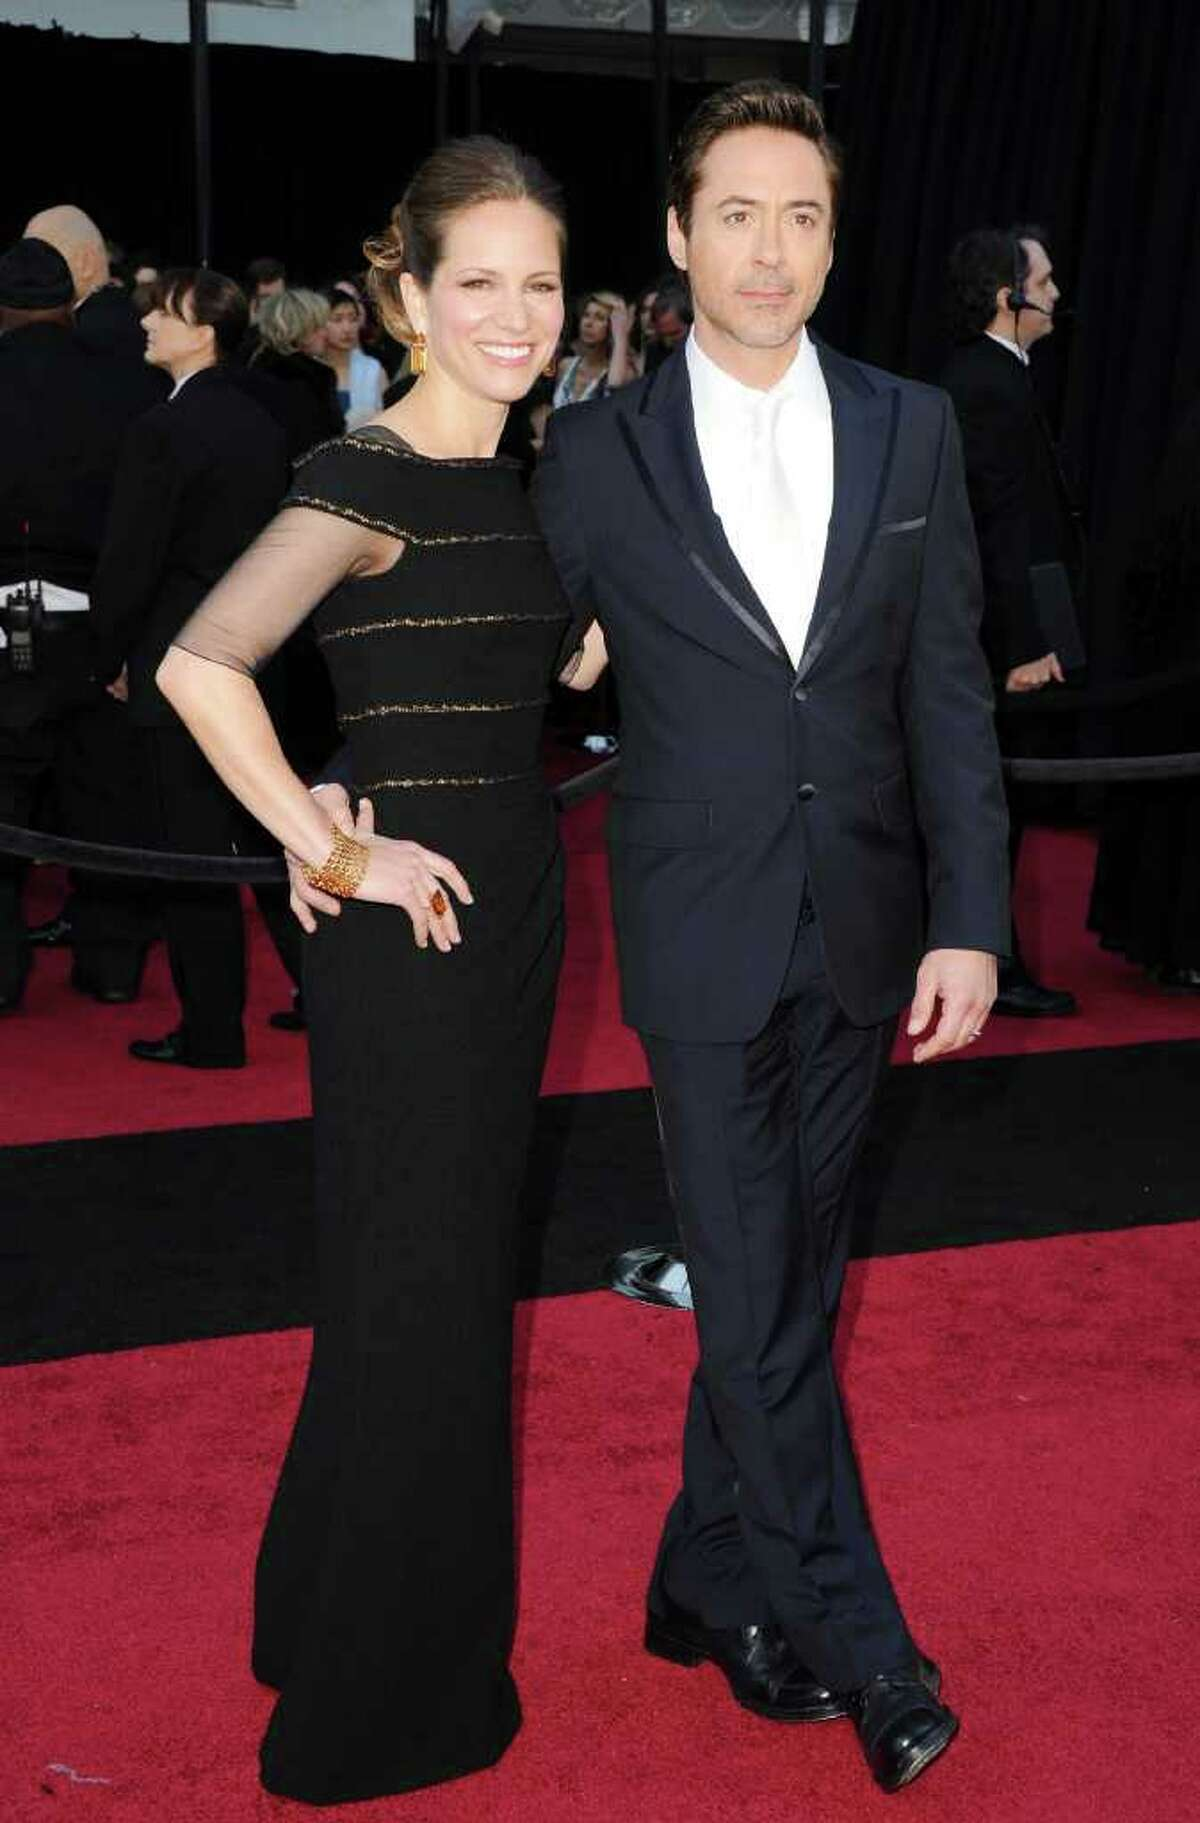 HOLLYWOOD, CA - FEBRUARY 27: Actor Robert Downey Jr. (R) and producer Susan Downey arrive at the 83rd Annual Academy Awards held at the Kodak Theatre on February 27, 2011 in Hollywood, California. (Photo by Jason Merritt/Getty Images) *** Local Caption *** Susan Downey;Robert Downey Jr.